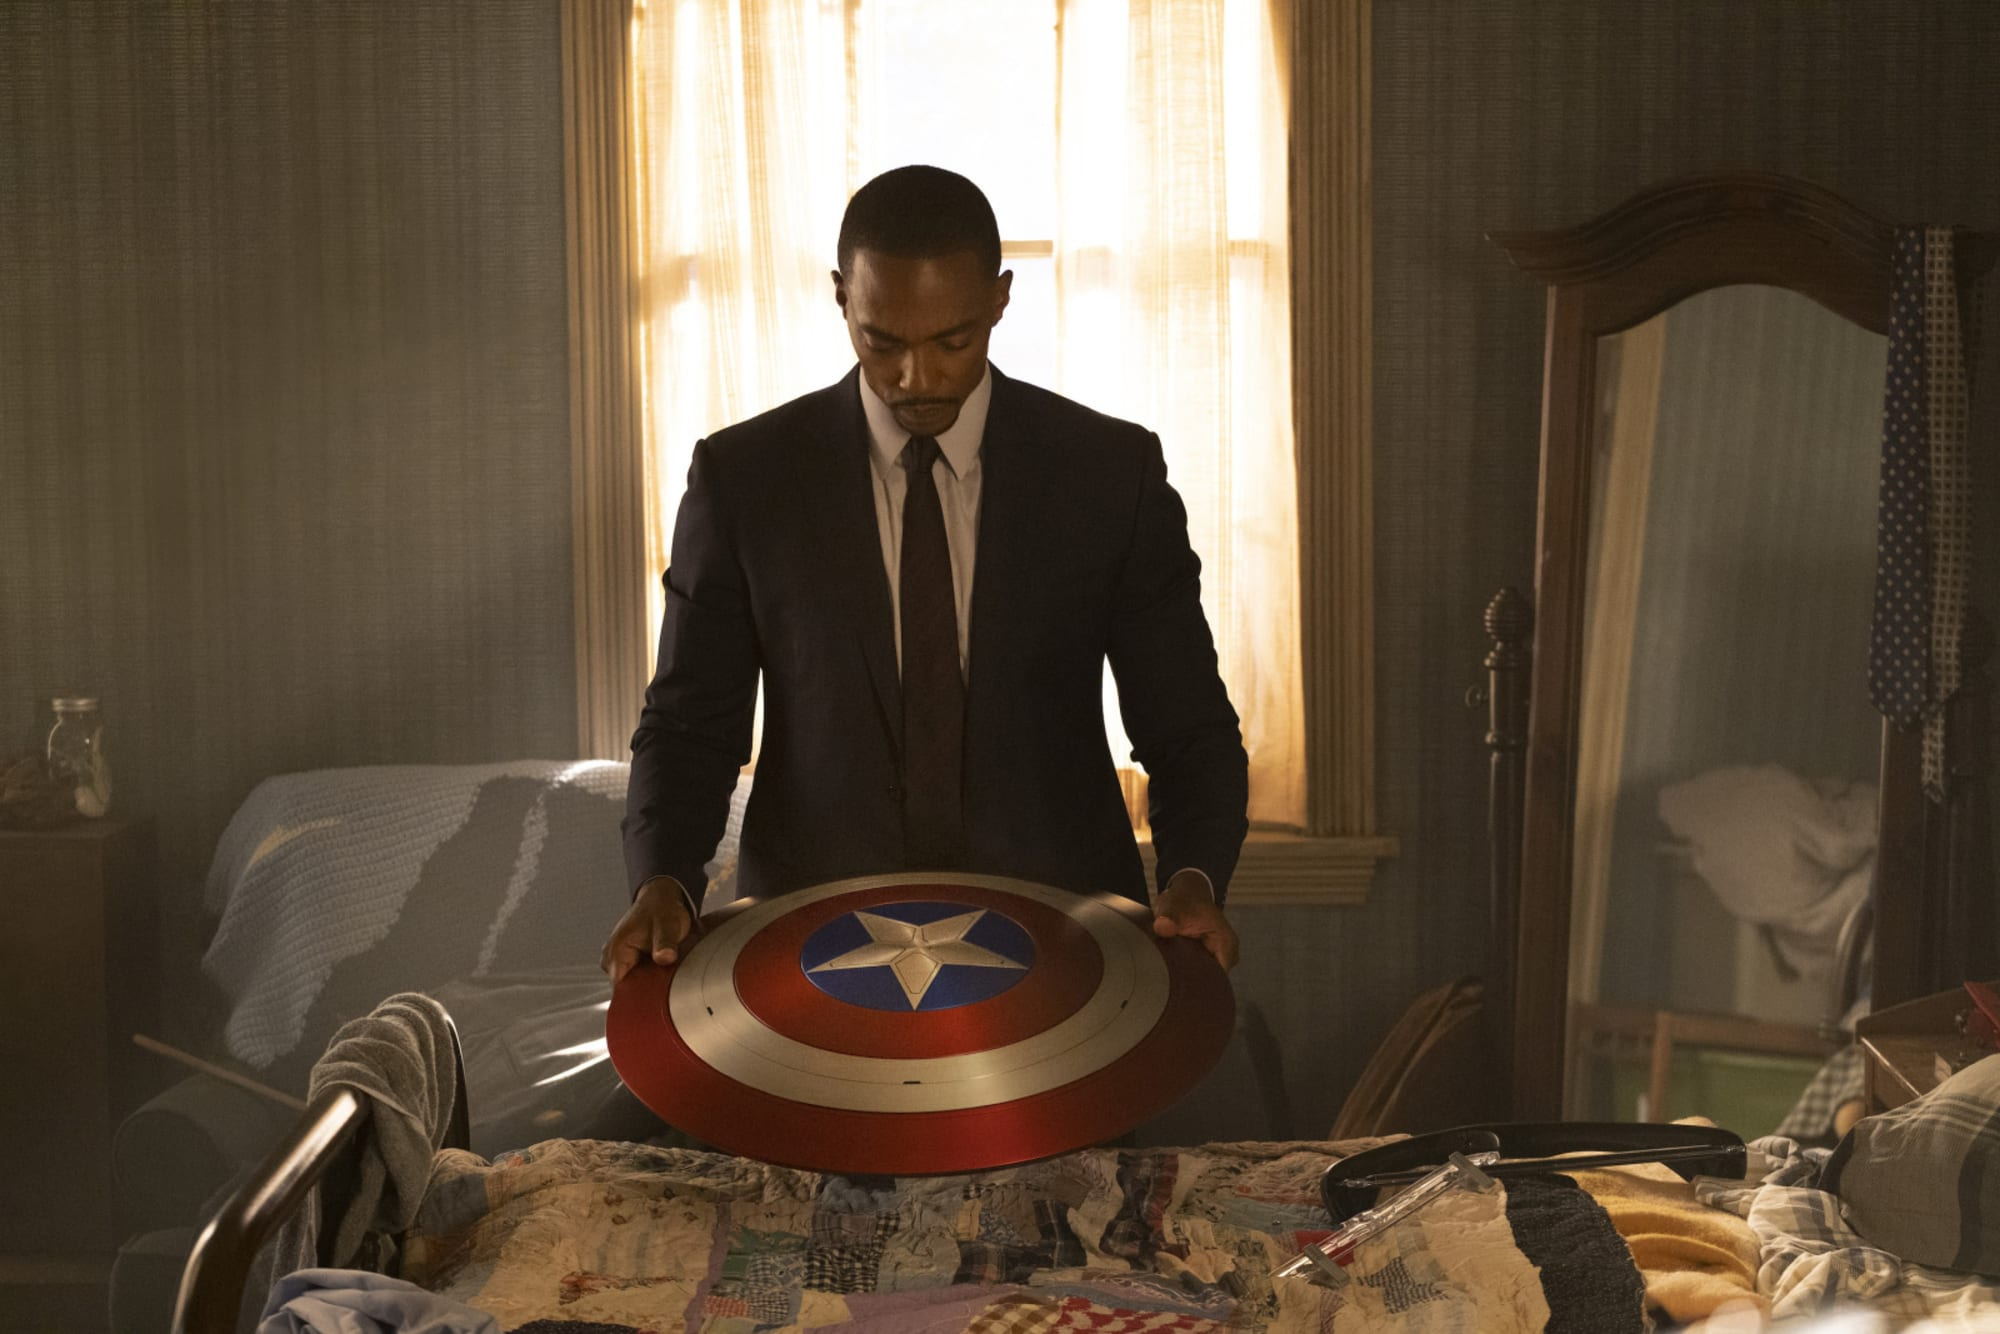 Falcon and the Winter Solider: Anthony Mackie becomes Captain America in stunning new image